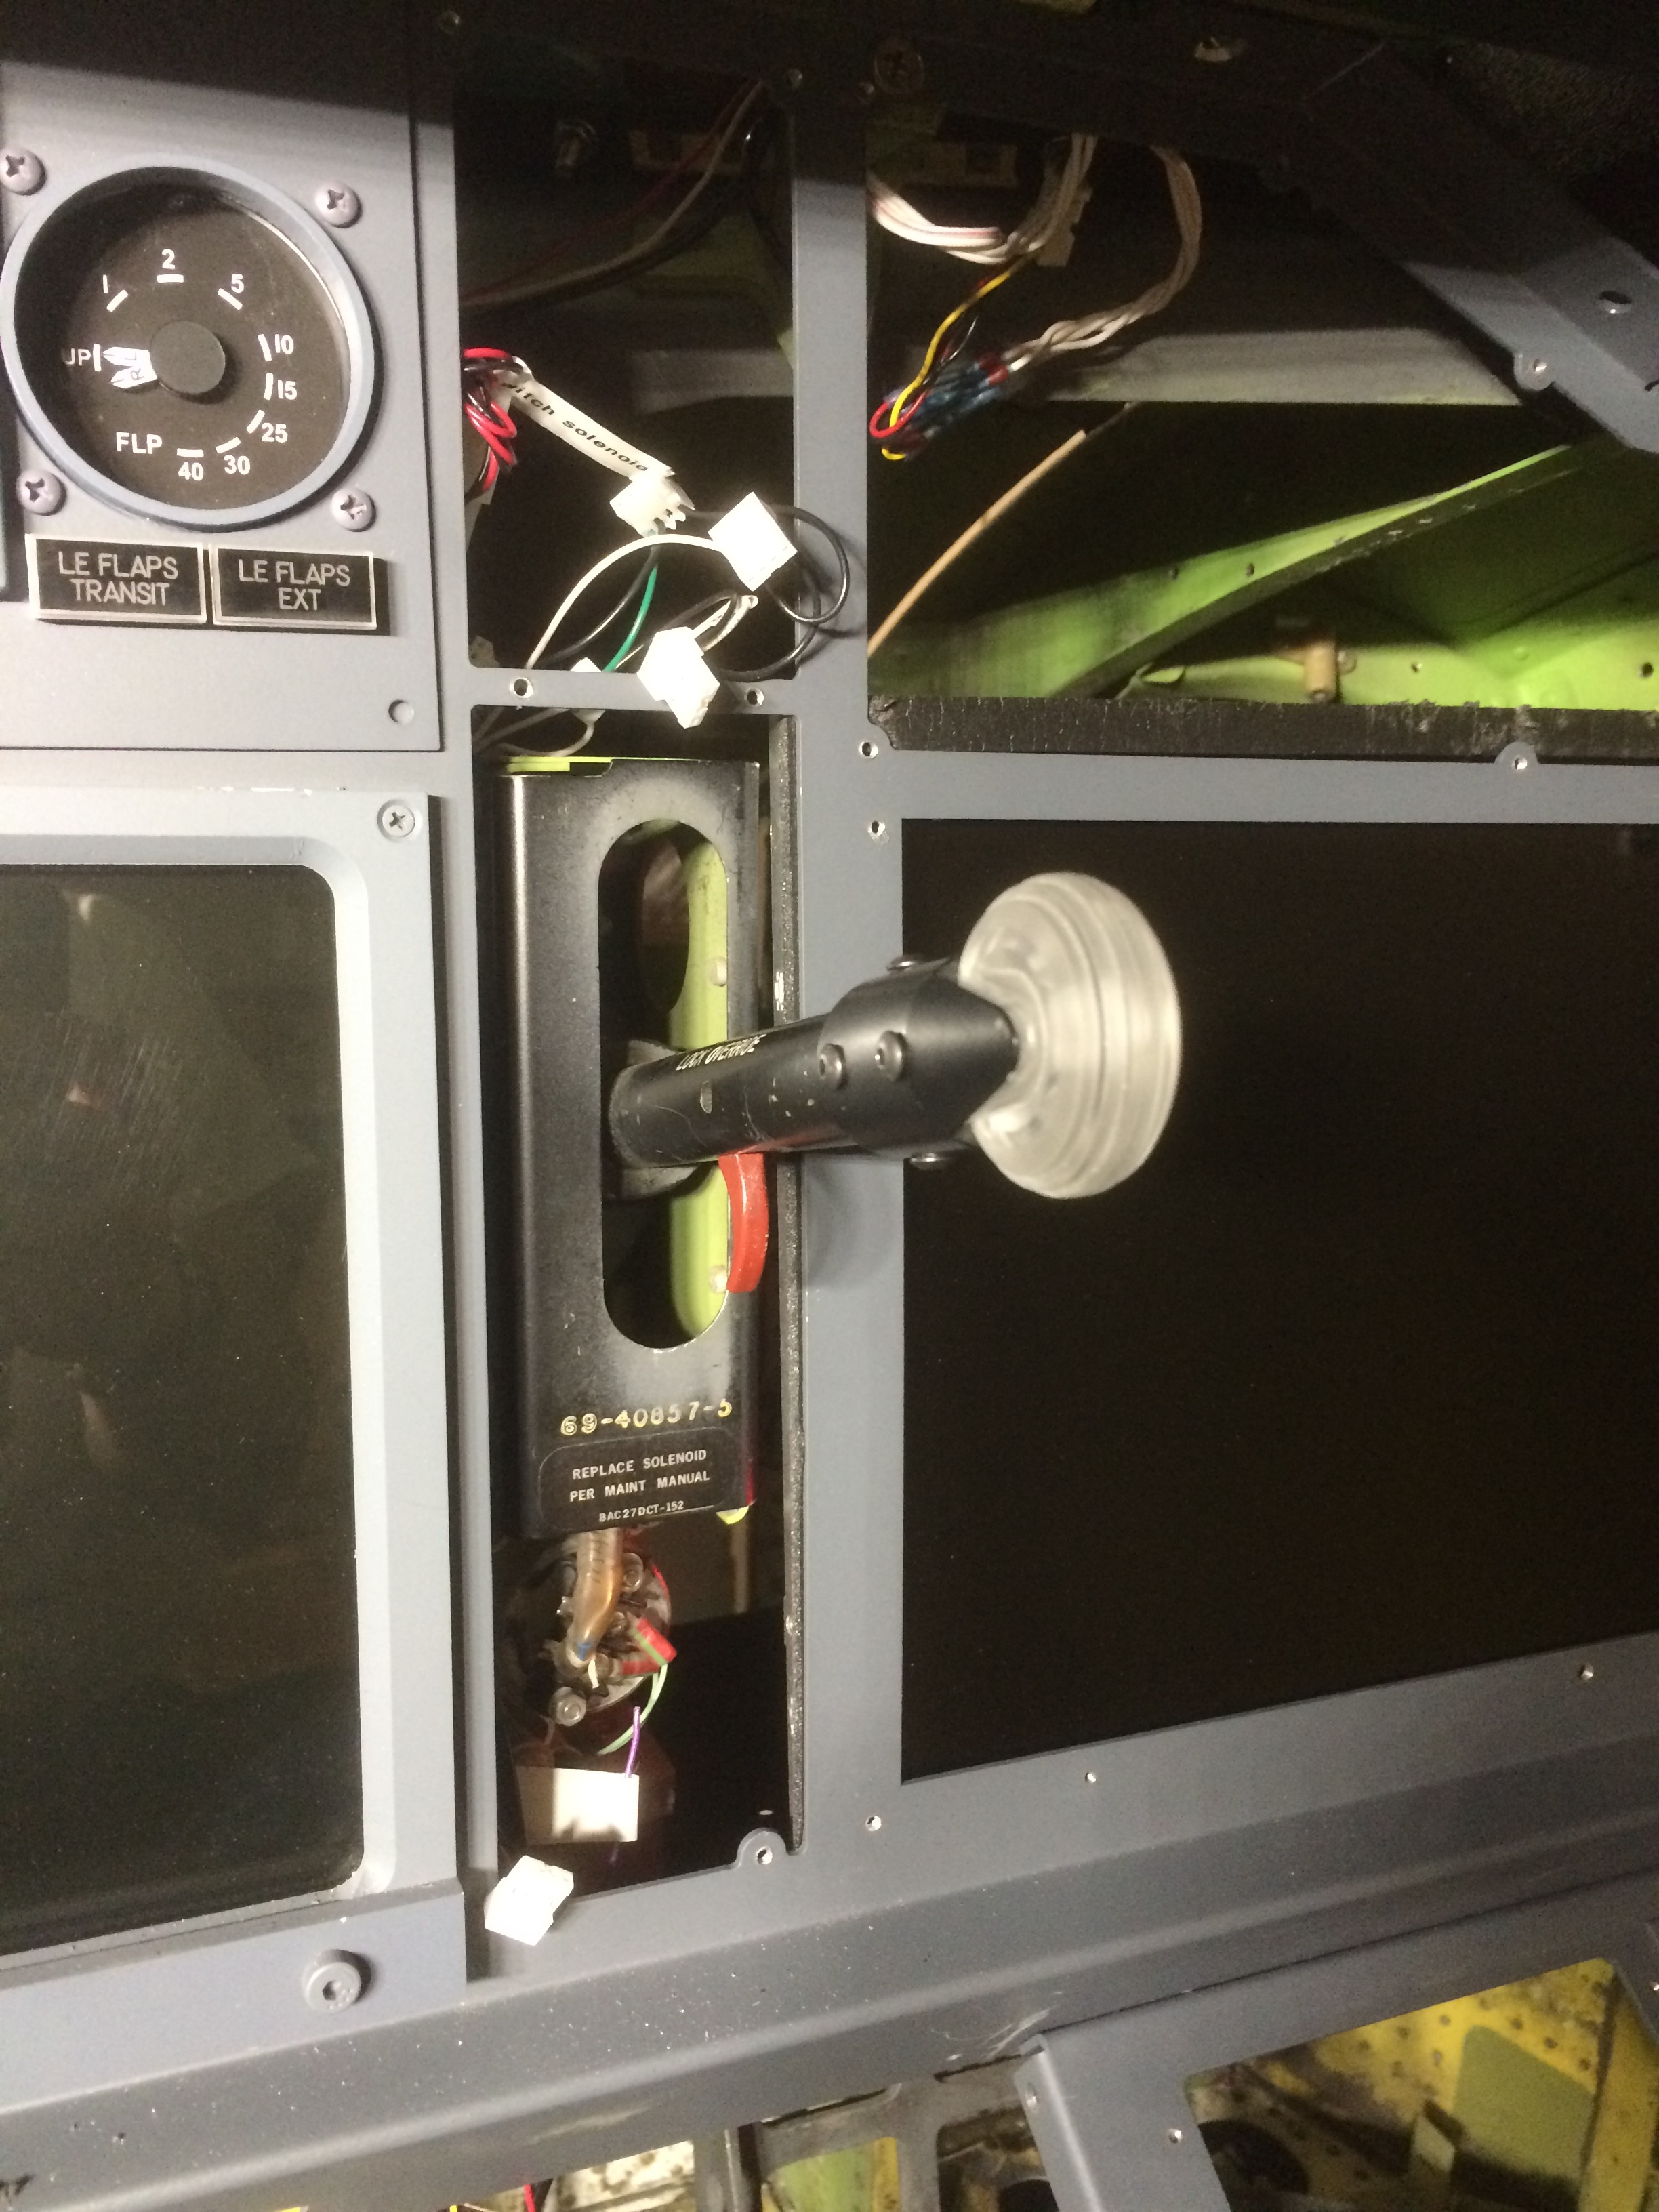 Airframe The 737ng Experience Thread How To Wire A Rotary Switch With Leo Bu0836x Board Boeing Landing Gear Lever After Installation Of Fds Ng Style Smaller Wheel Knob